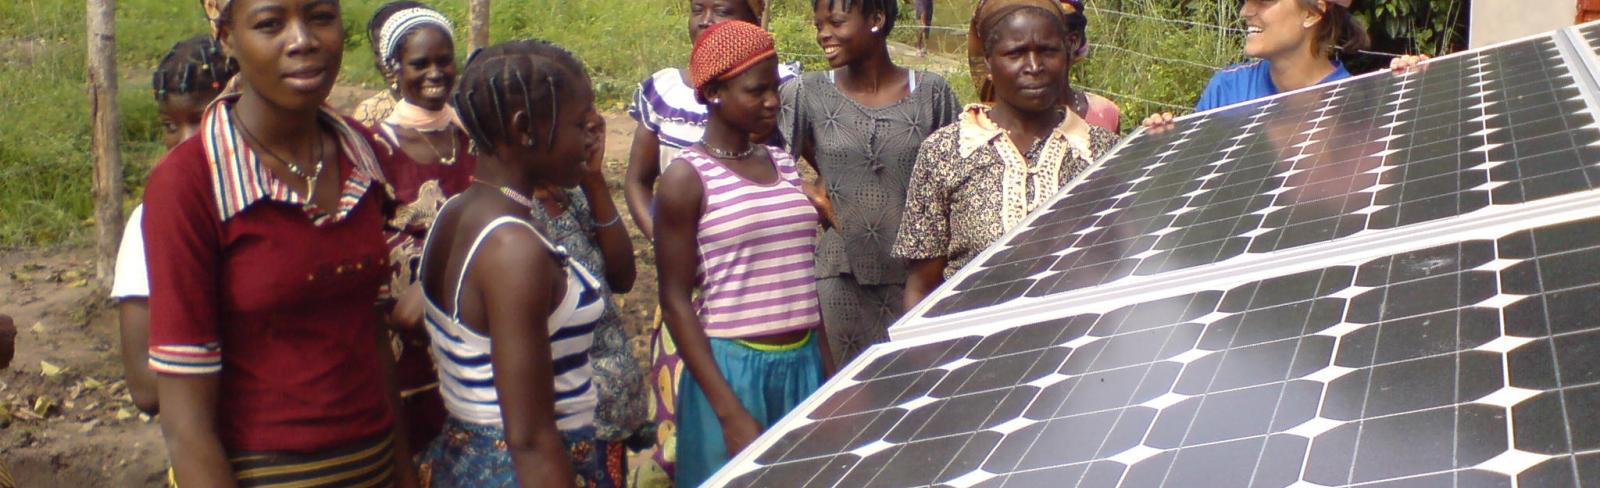 Large-scale Solar Energy Gets a Boost in West Africa